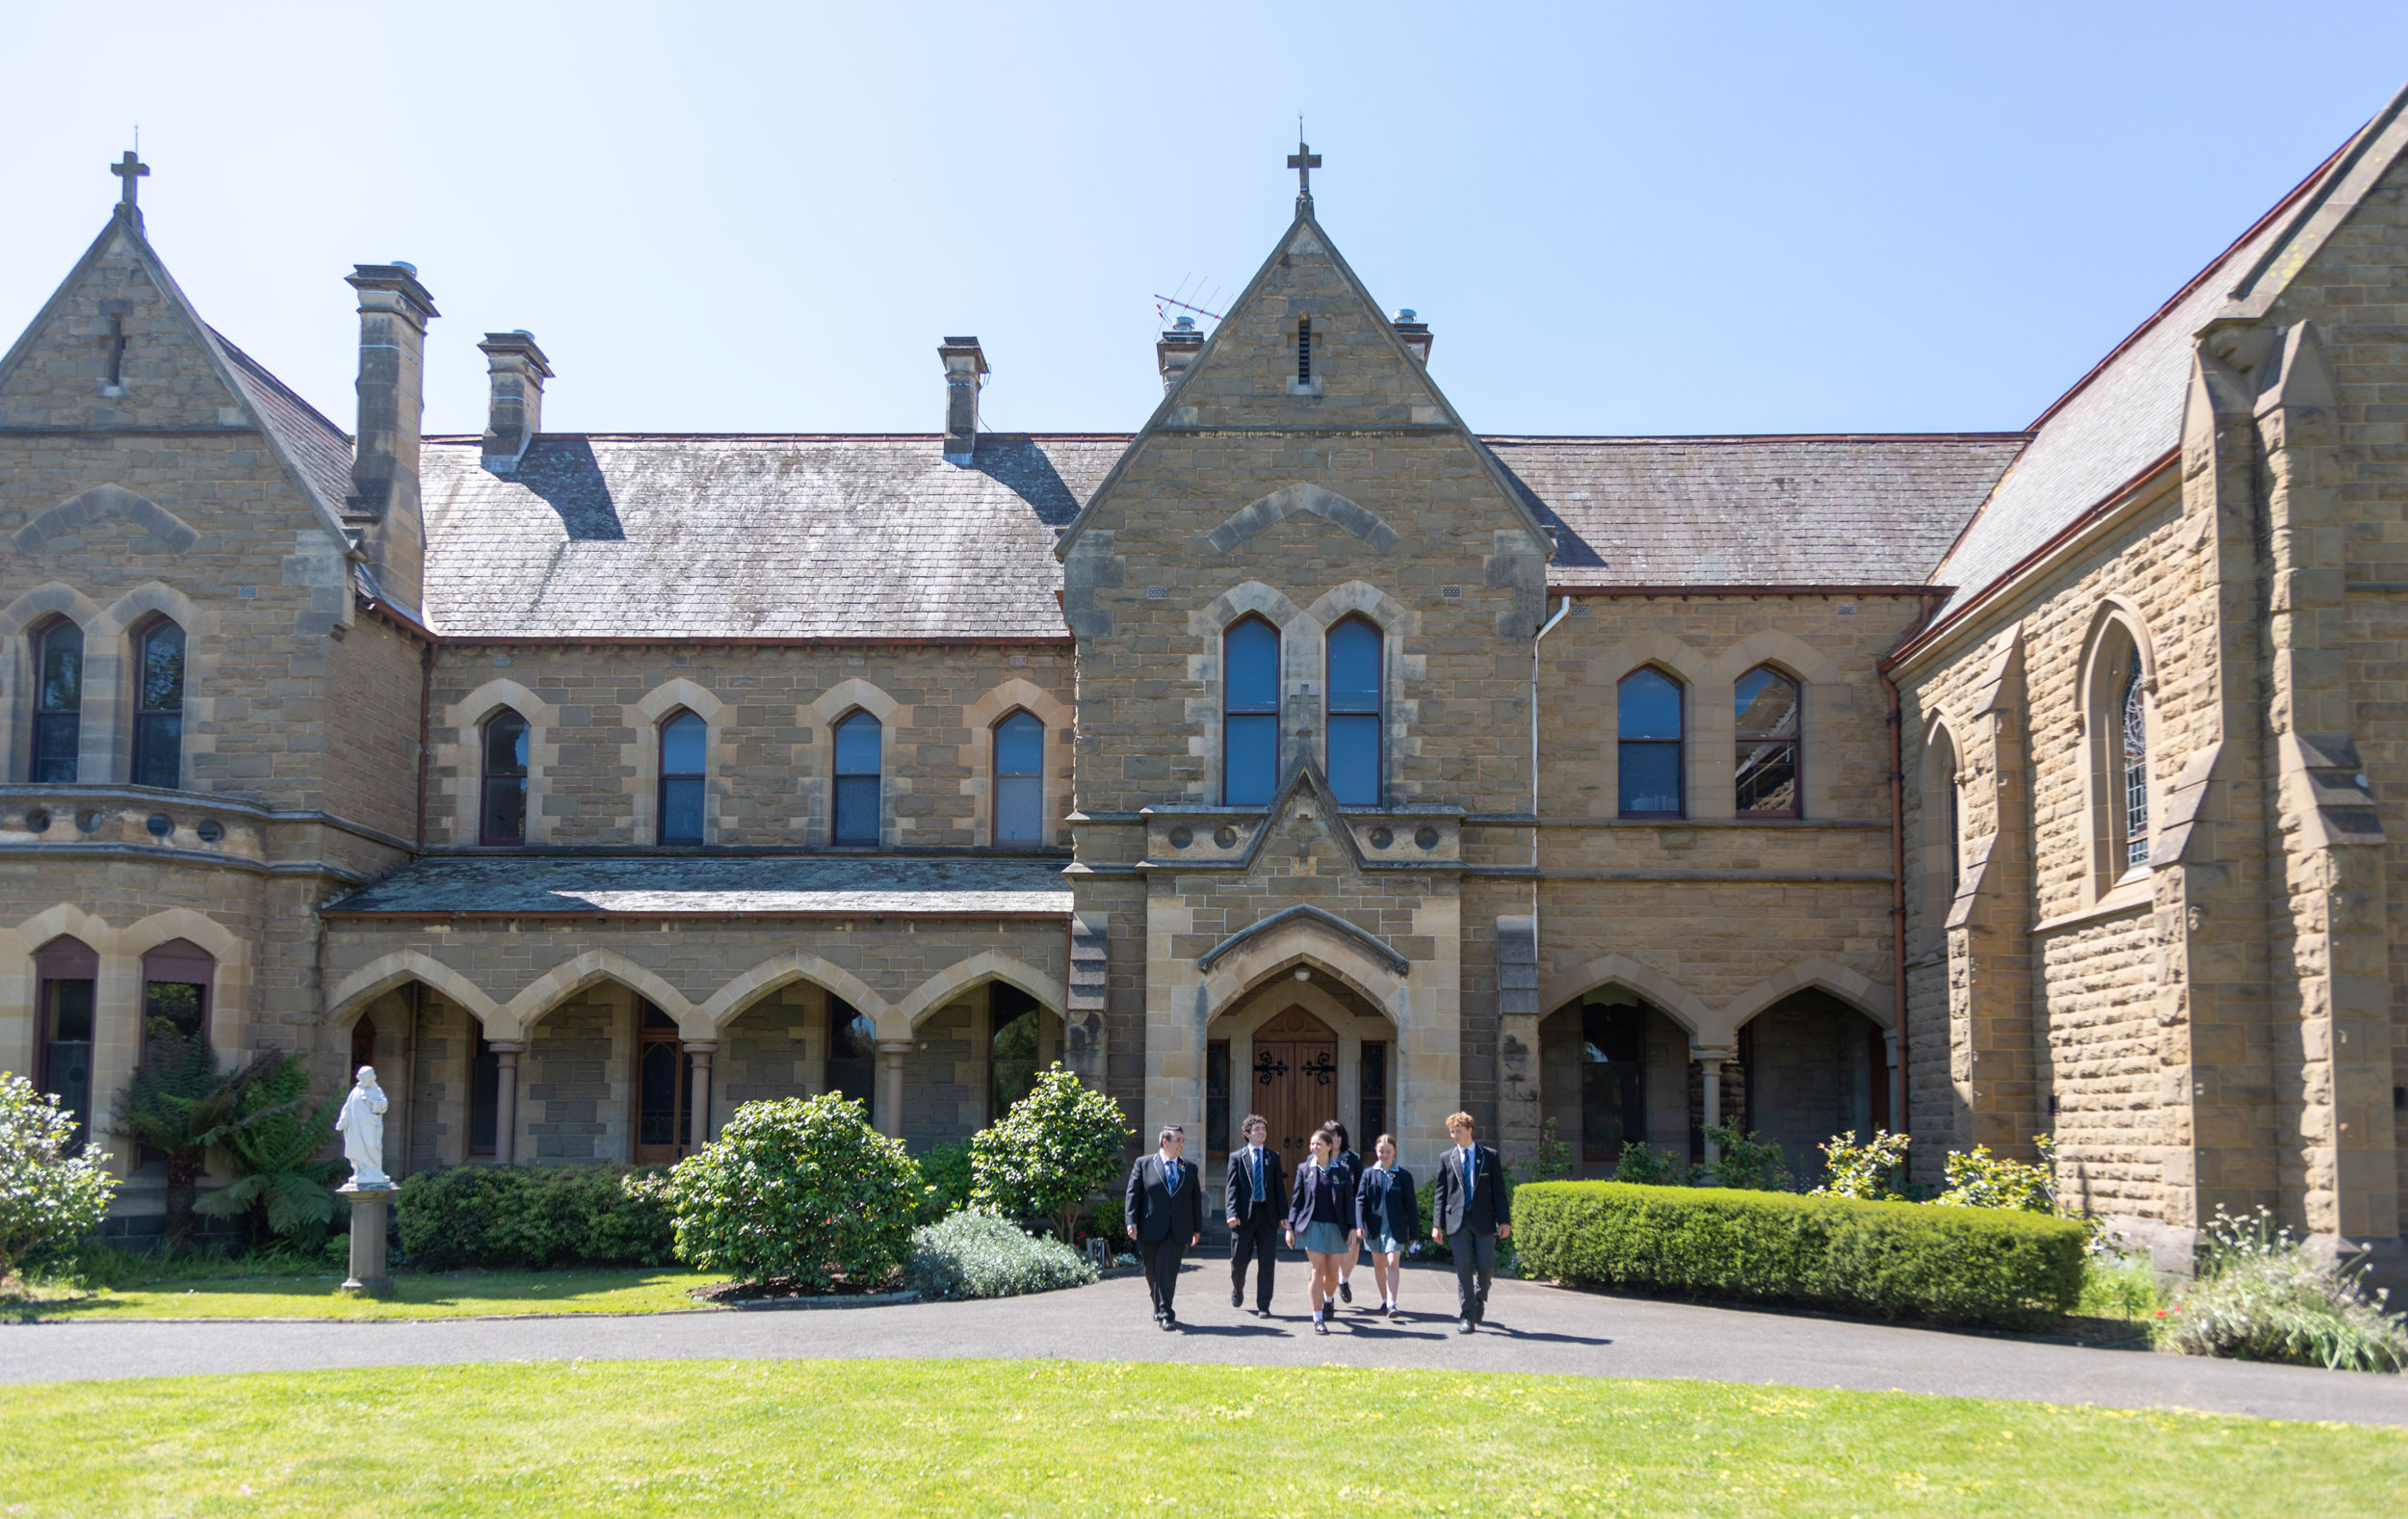 MEDIA RELEASE: A new era in education for two of Melbourne's most historic schools